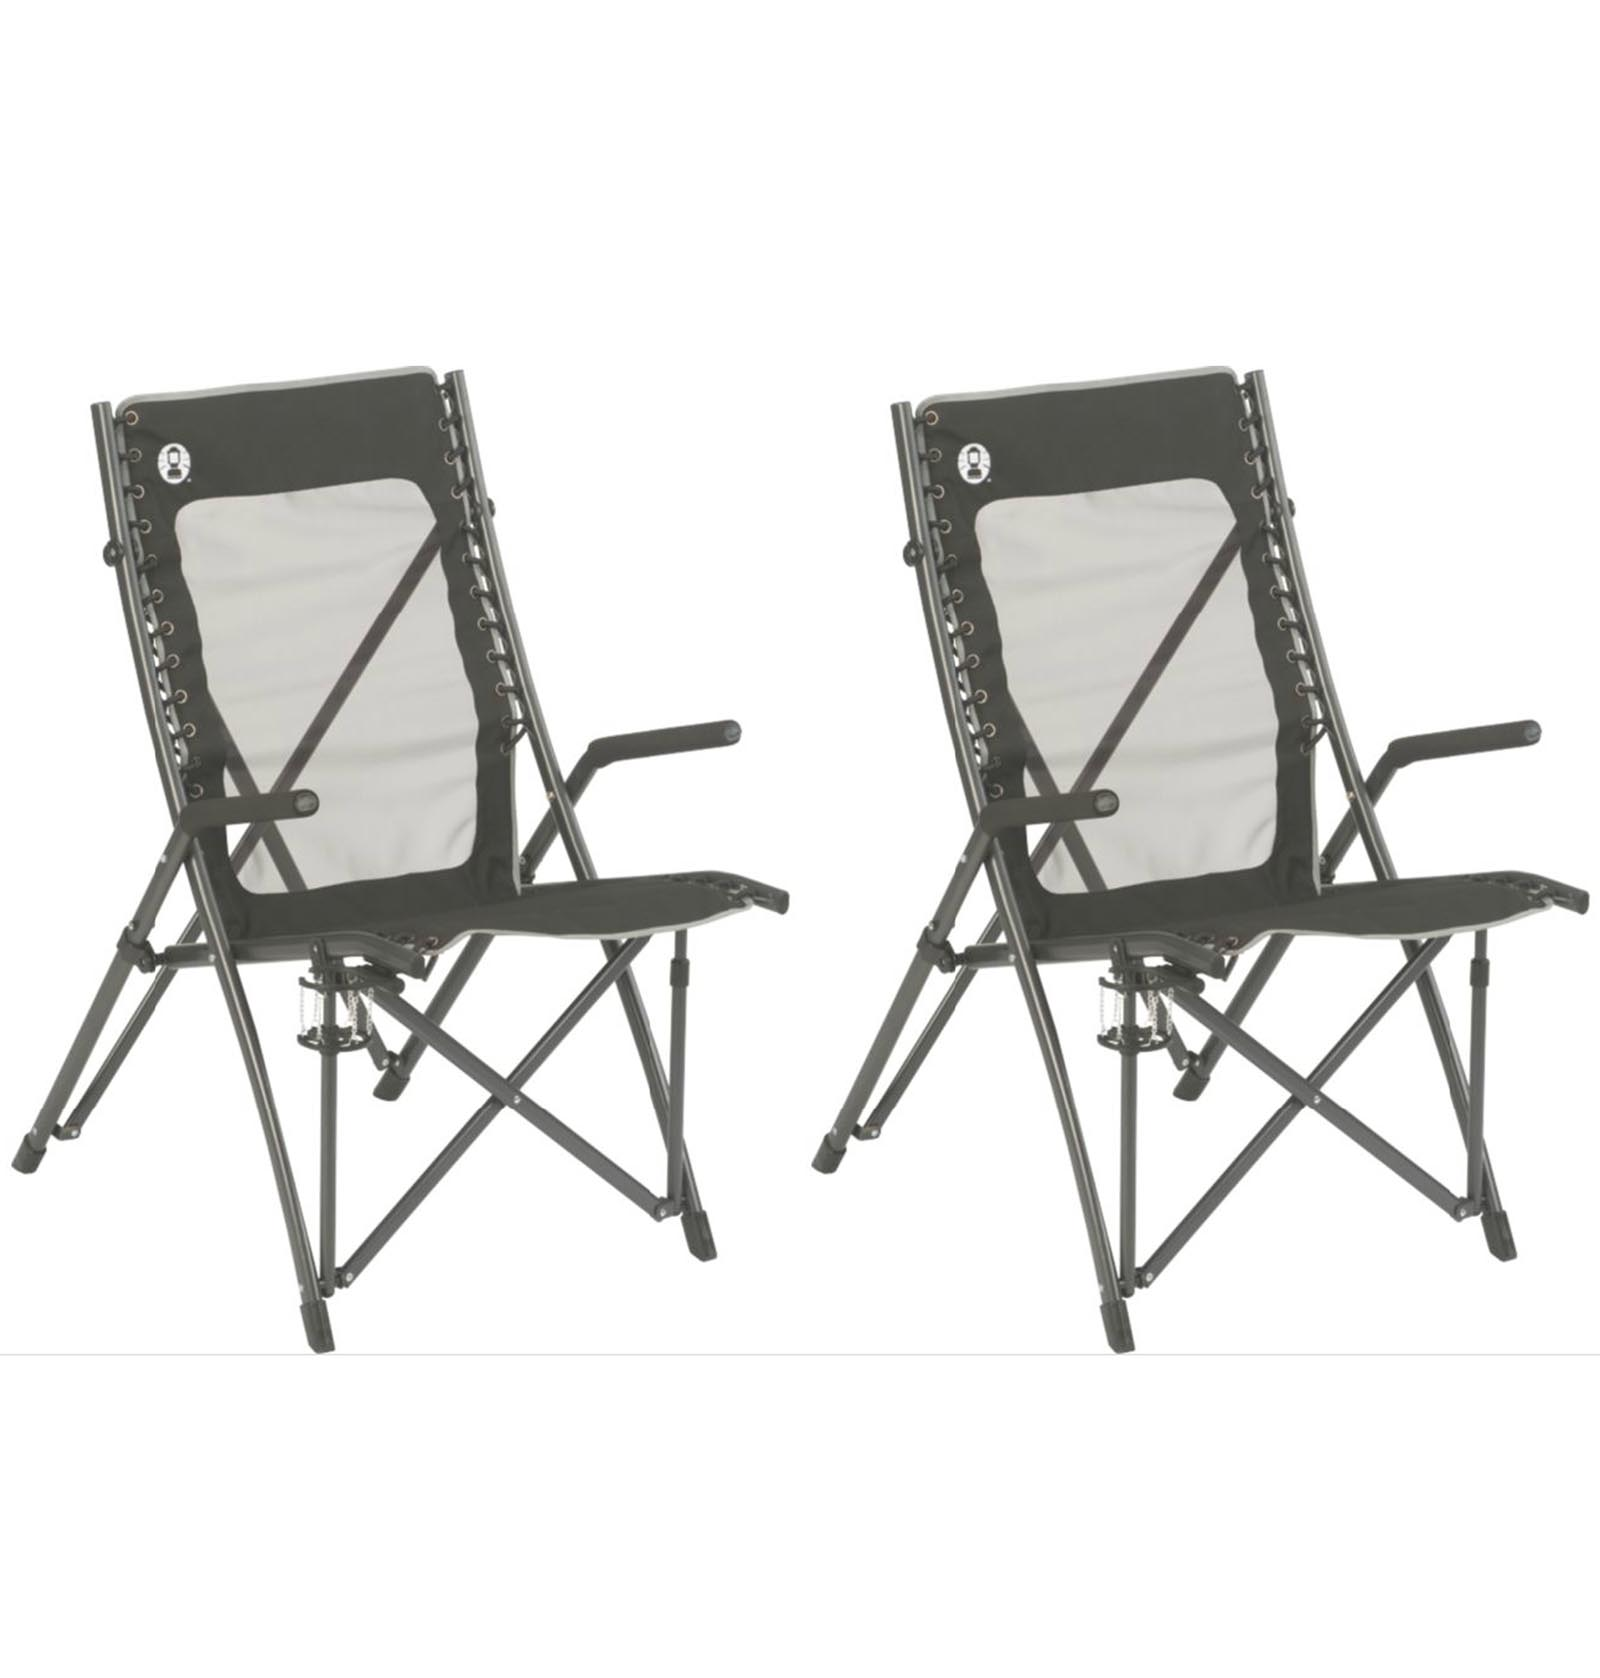 Coleman Comfortsmart Chair 2 Coleman Comfortsmart Suspension Camping Folding Chairs W Mesh